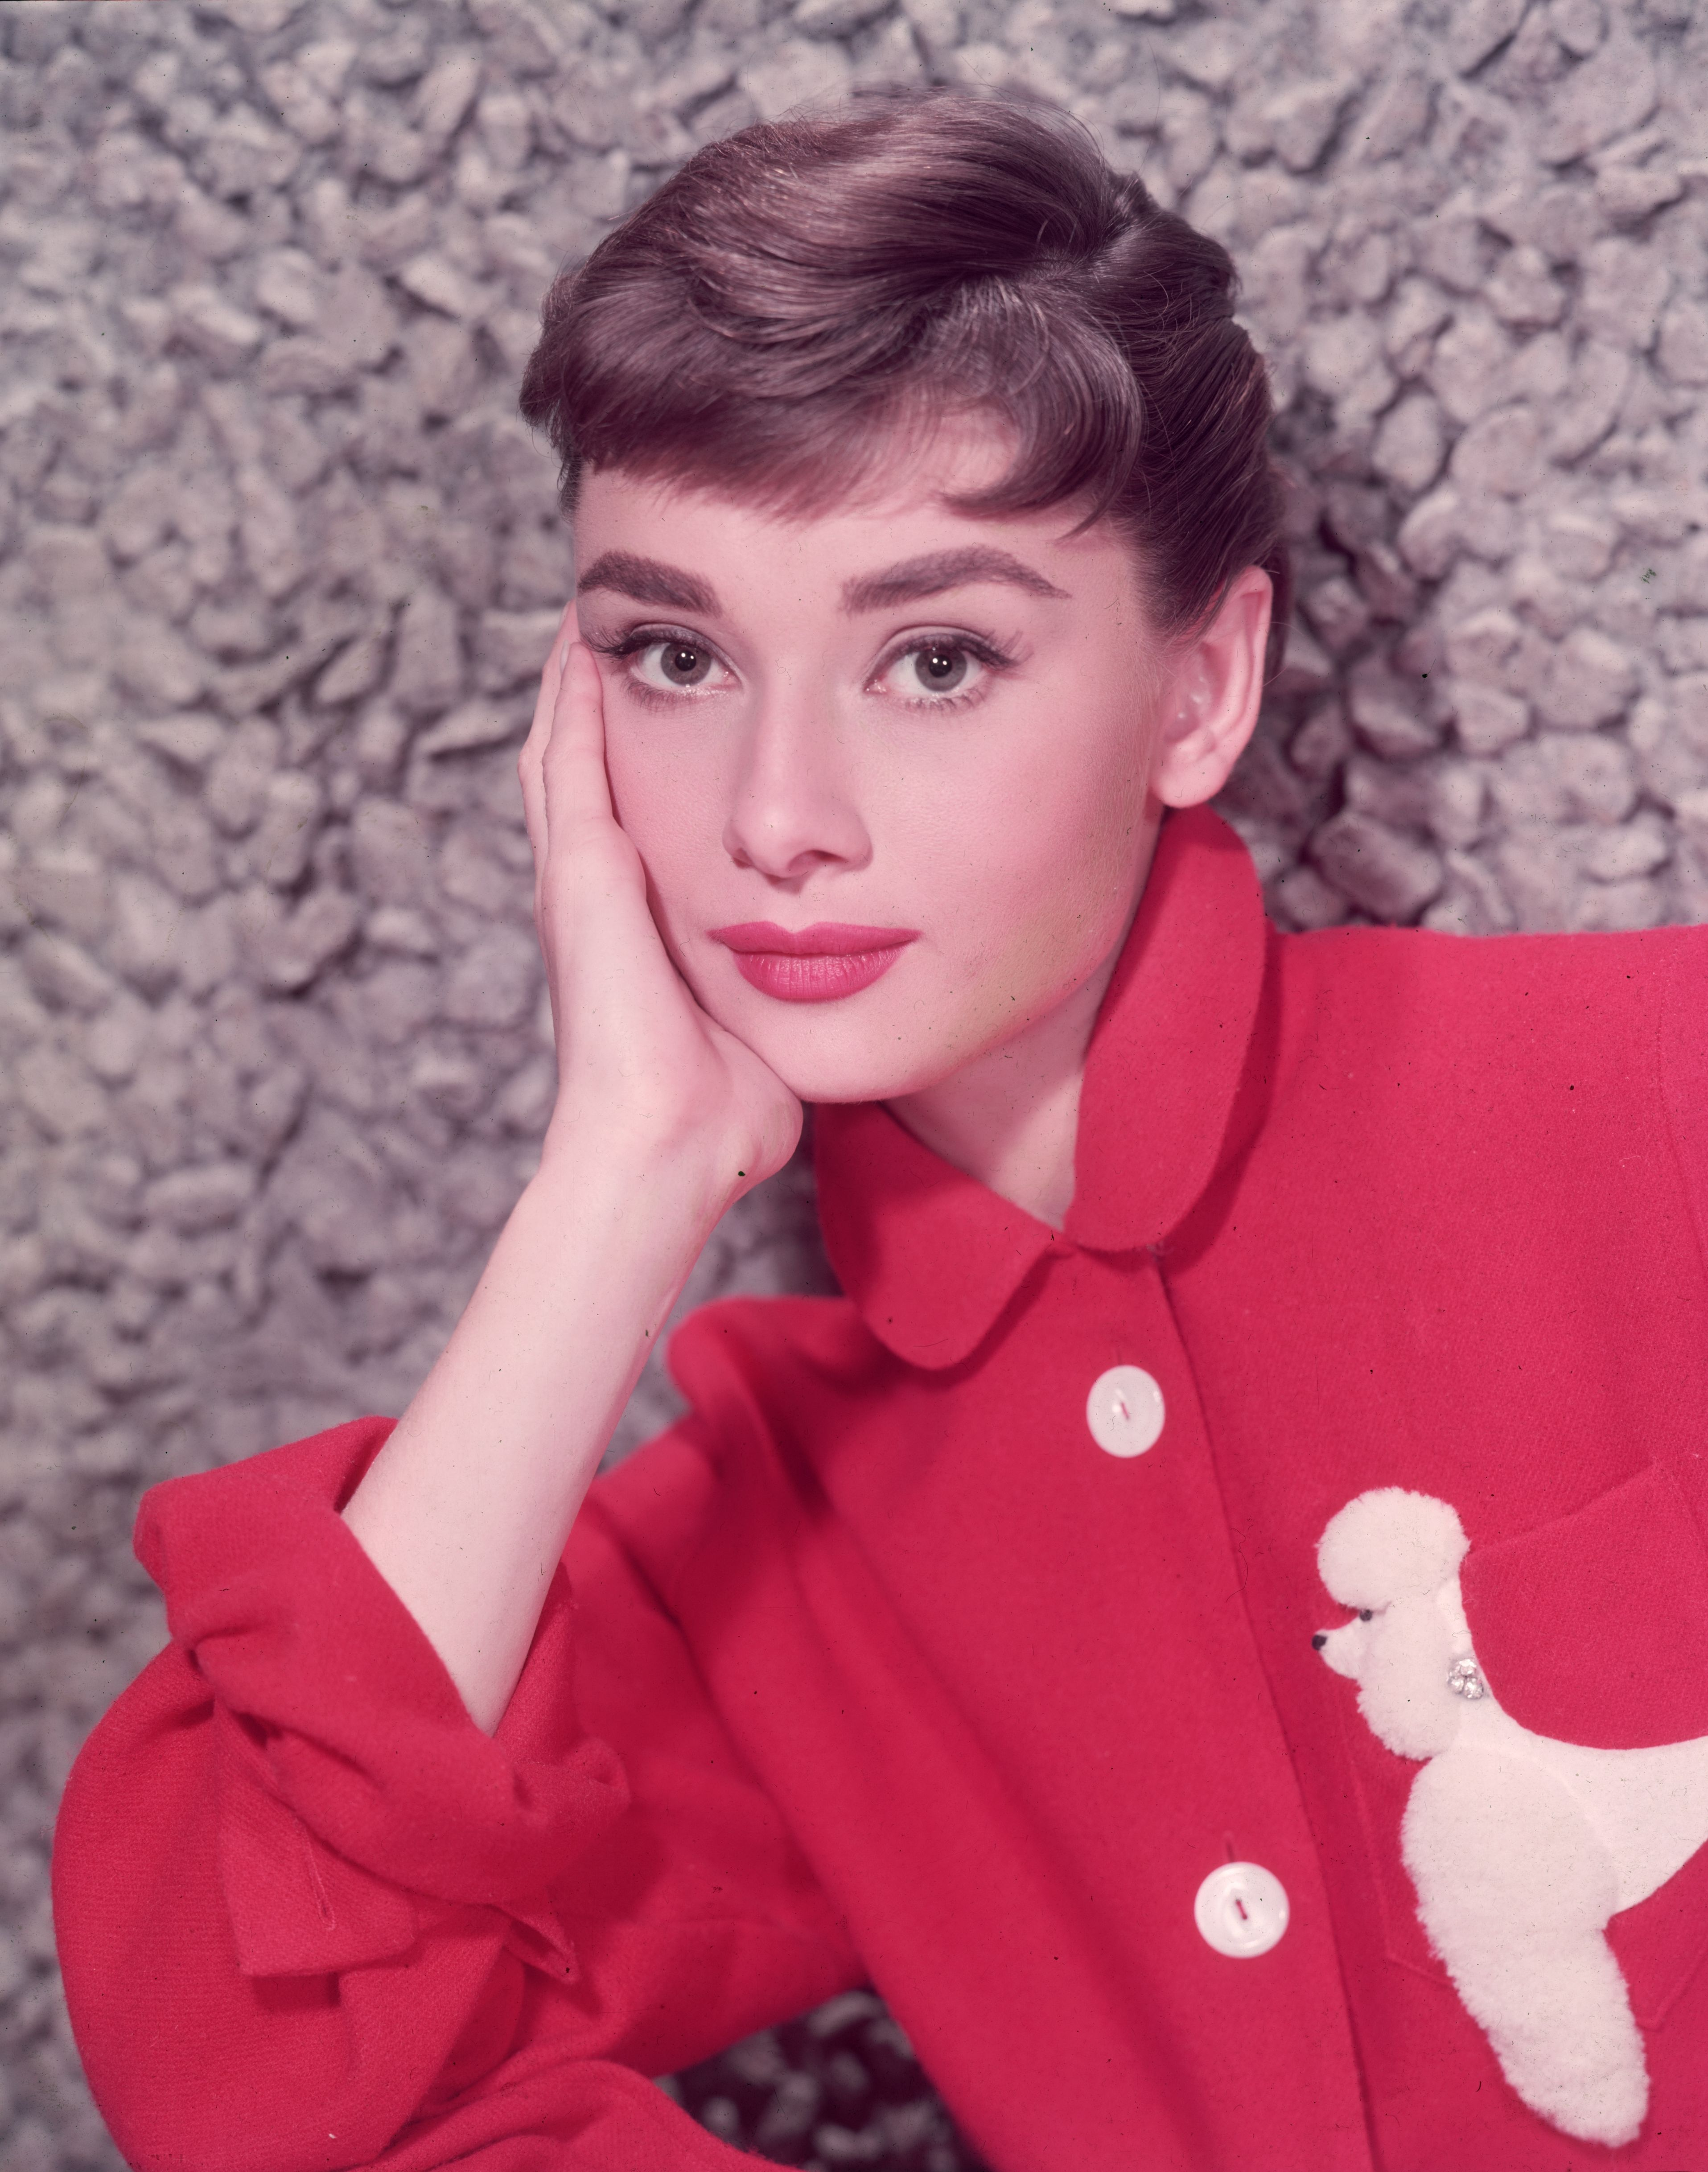 Headshot portrait of Belgian-born actor Audrey Hepburn (1929 - 1993) leaning on her hand in a red jacket with a poodle applique on January 01, 1955 | Photo: Getty Images